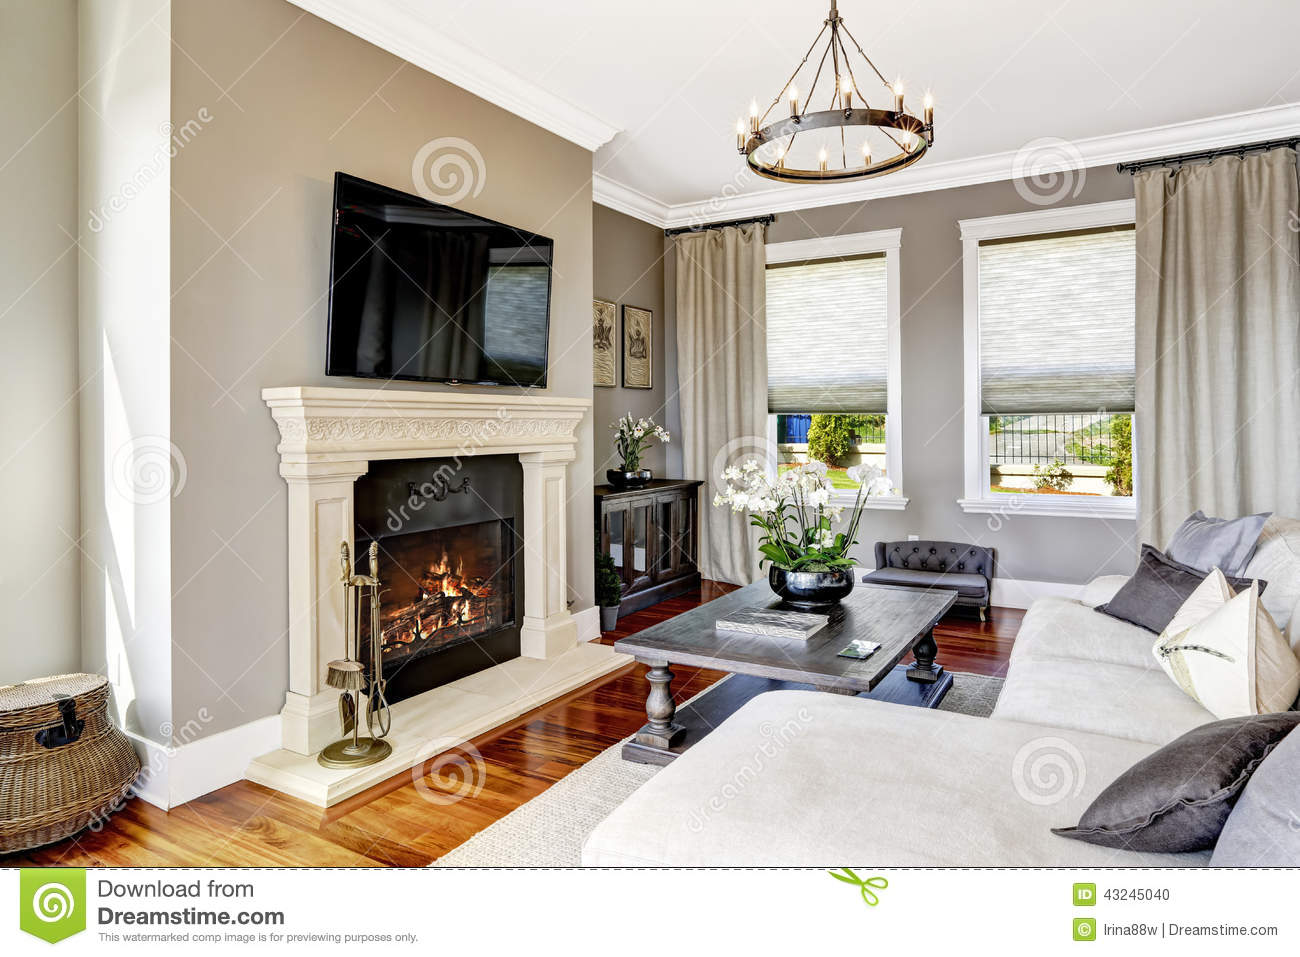 Mansion Interior Living Room With Tv : Bright luxury living room with fireplace and tv, white cozy couch and ...